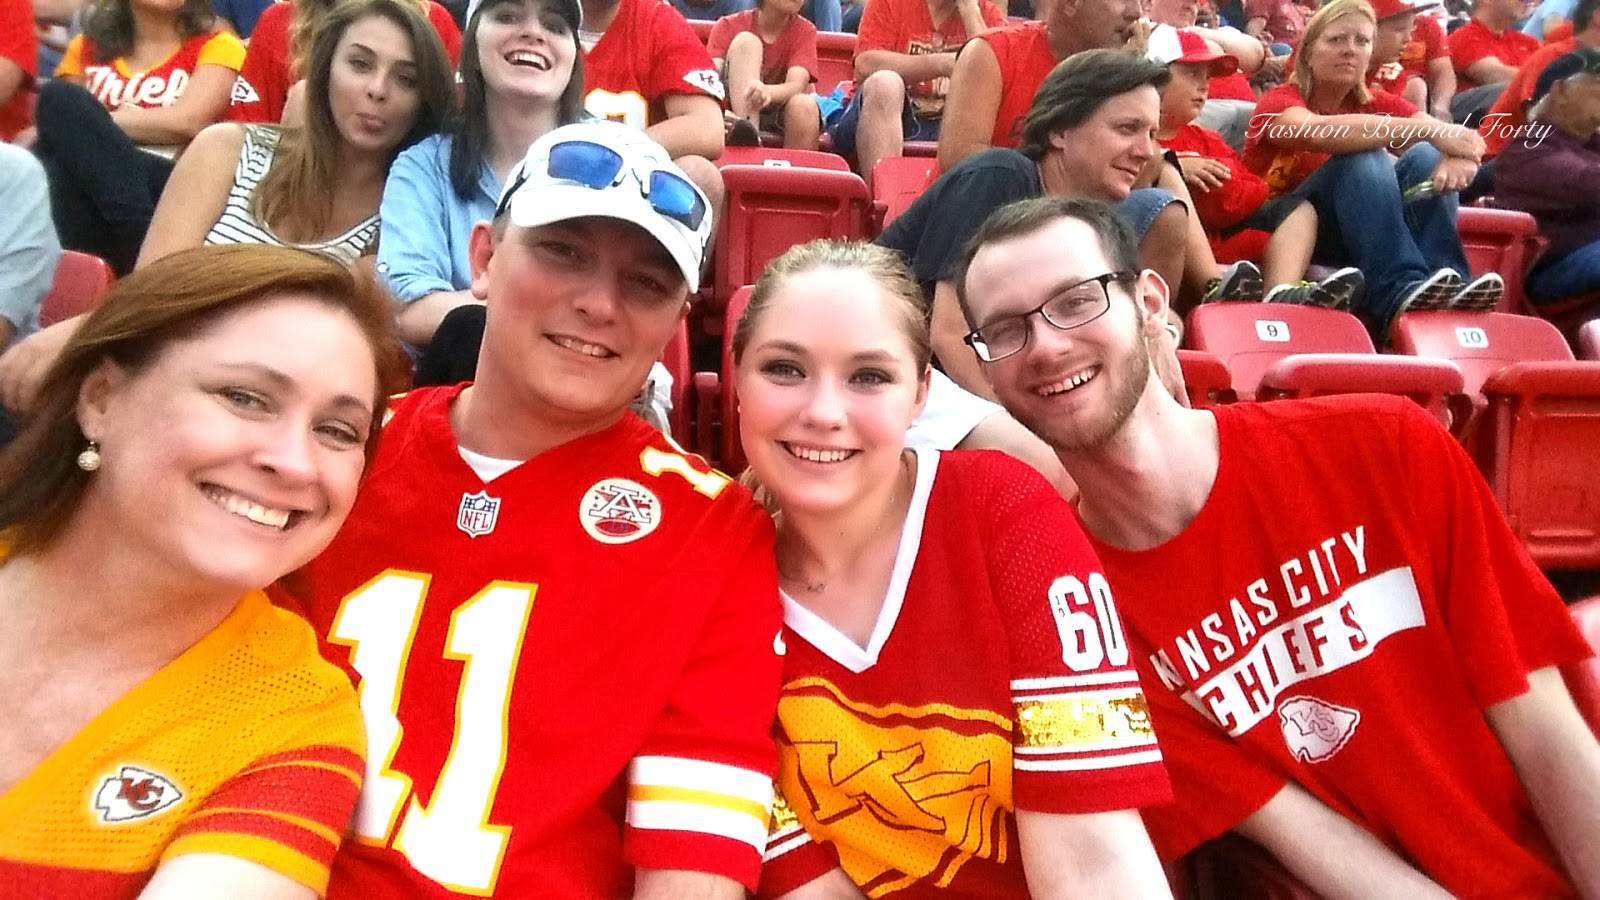 Chiefs Fans at Game